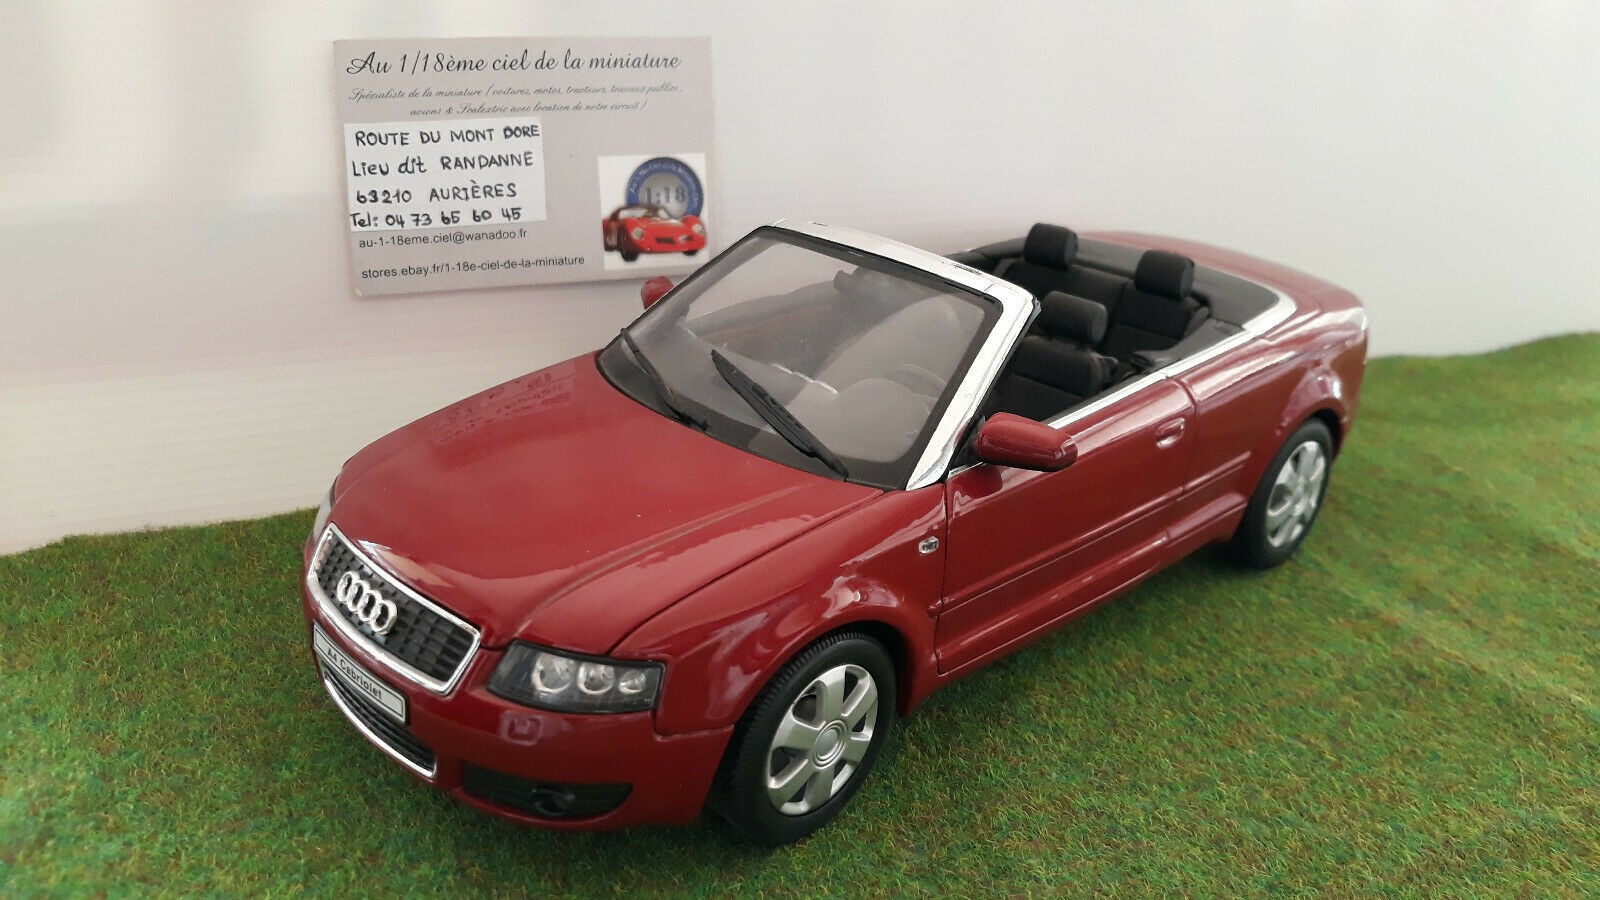 AUDI A4 CABRIOLET ouGrün open bordeaux 1 18 WELLY voiture miniature d collection